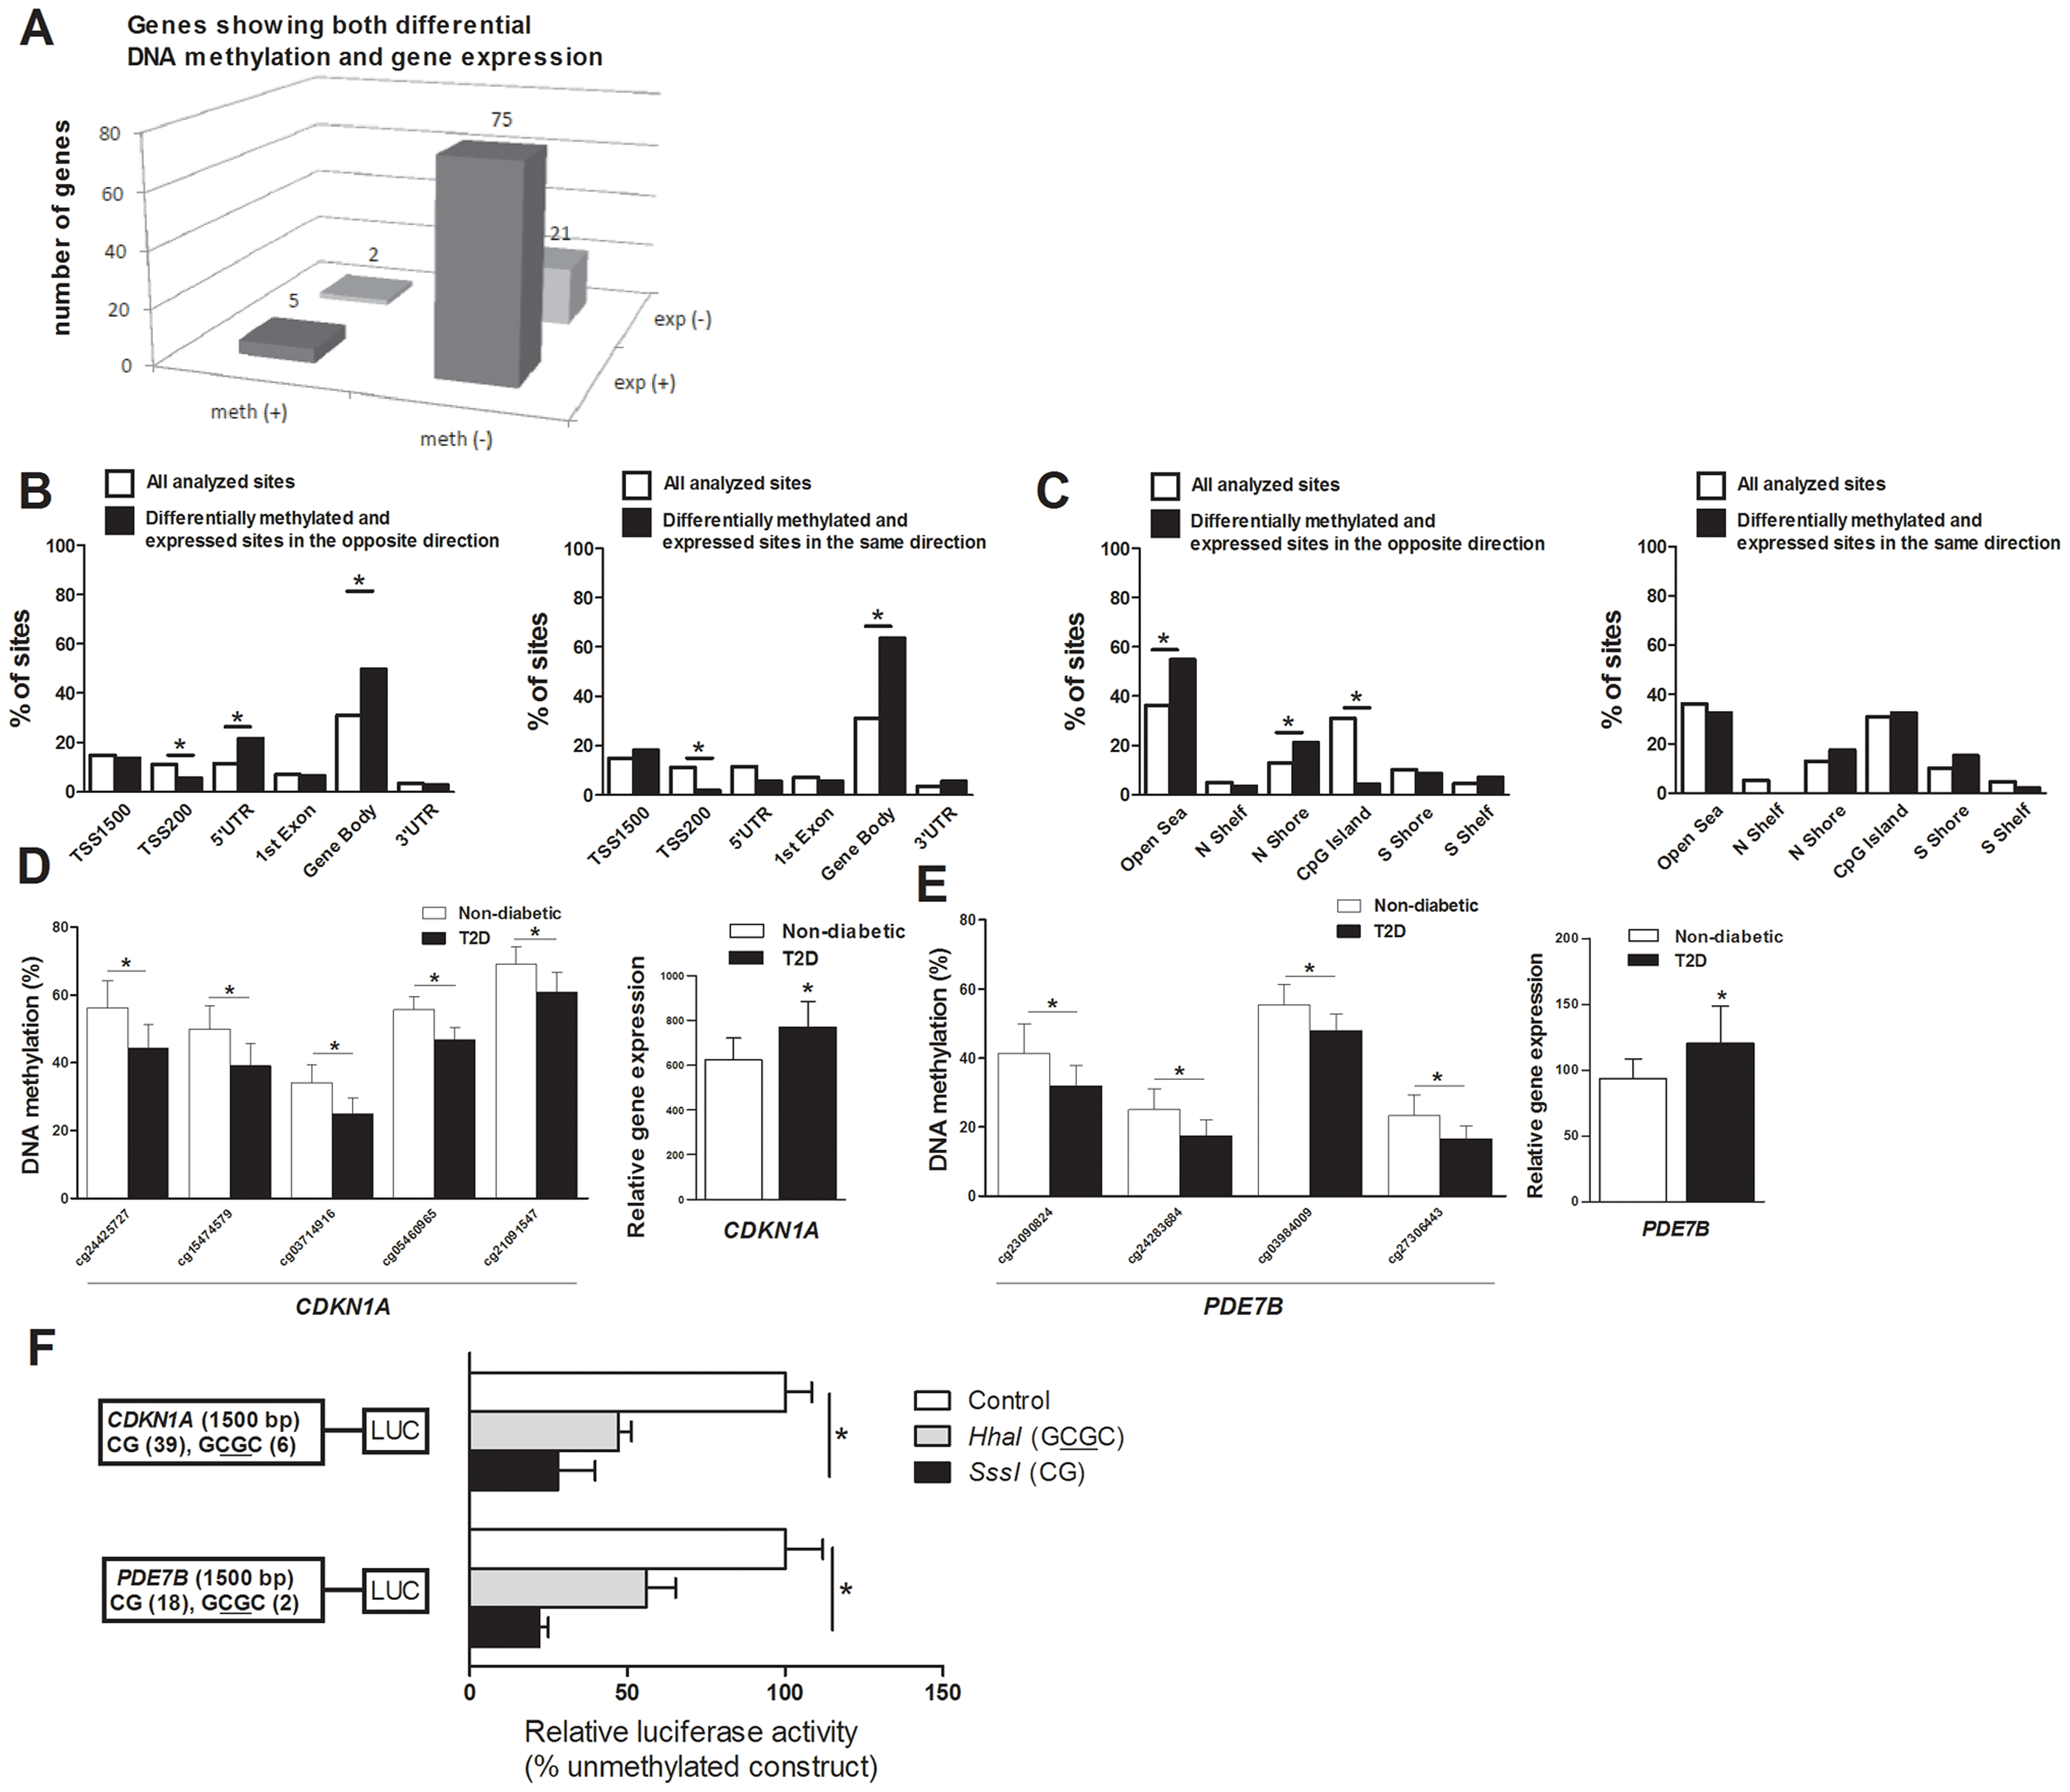 Relation between DNA methylation and gene expression in human pancreatic islets.